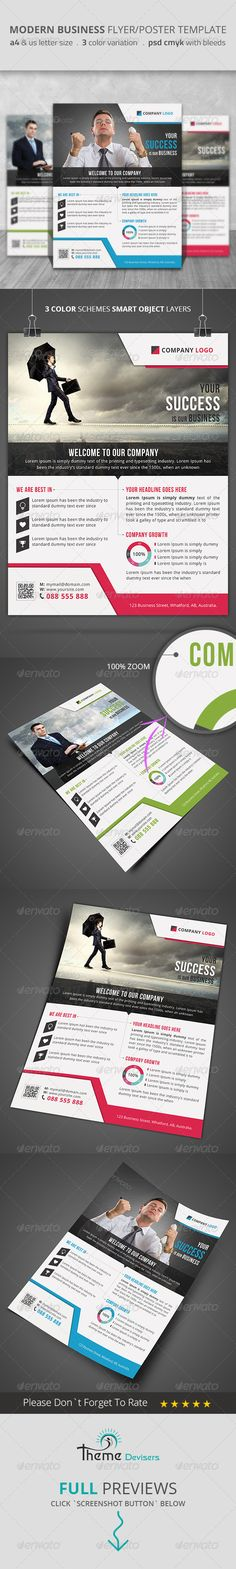 Modern Business Flyer/Poster Template for modern business promotion. http://graphicriver.net/item/modern-business-flyerposter-template/8584691?ref=themedevisers